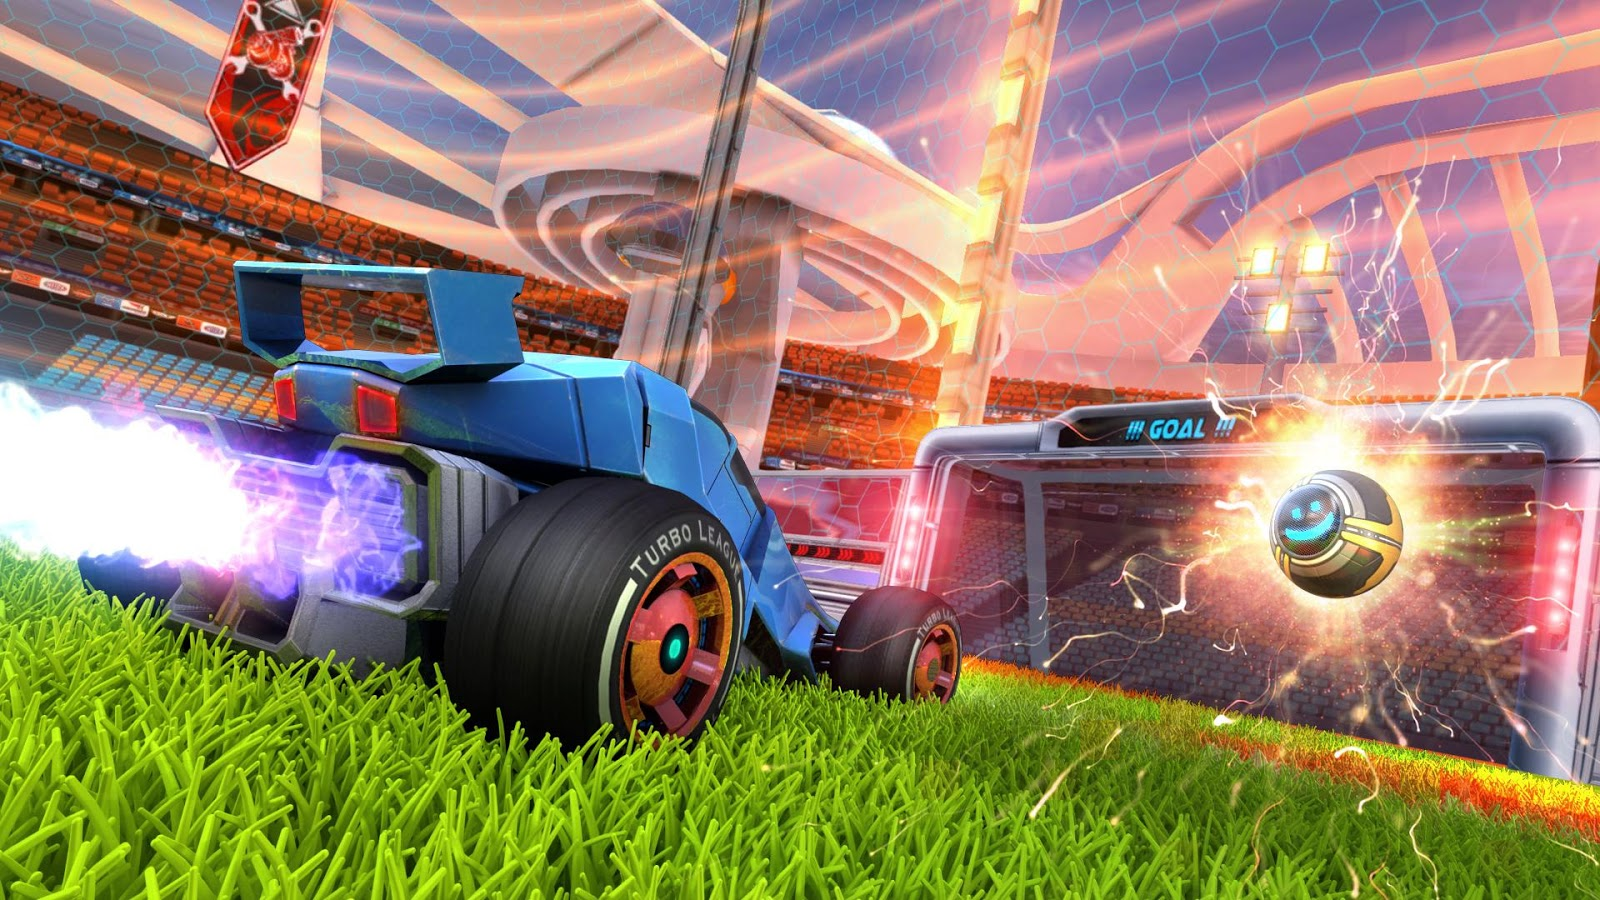 Turbo League 2 1 APK + OBB (Data File) Download - Android